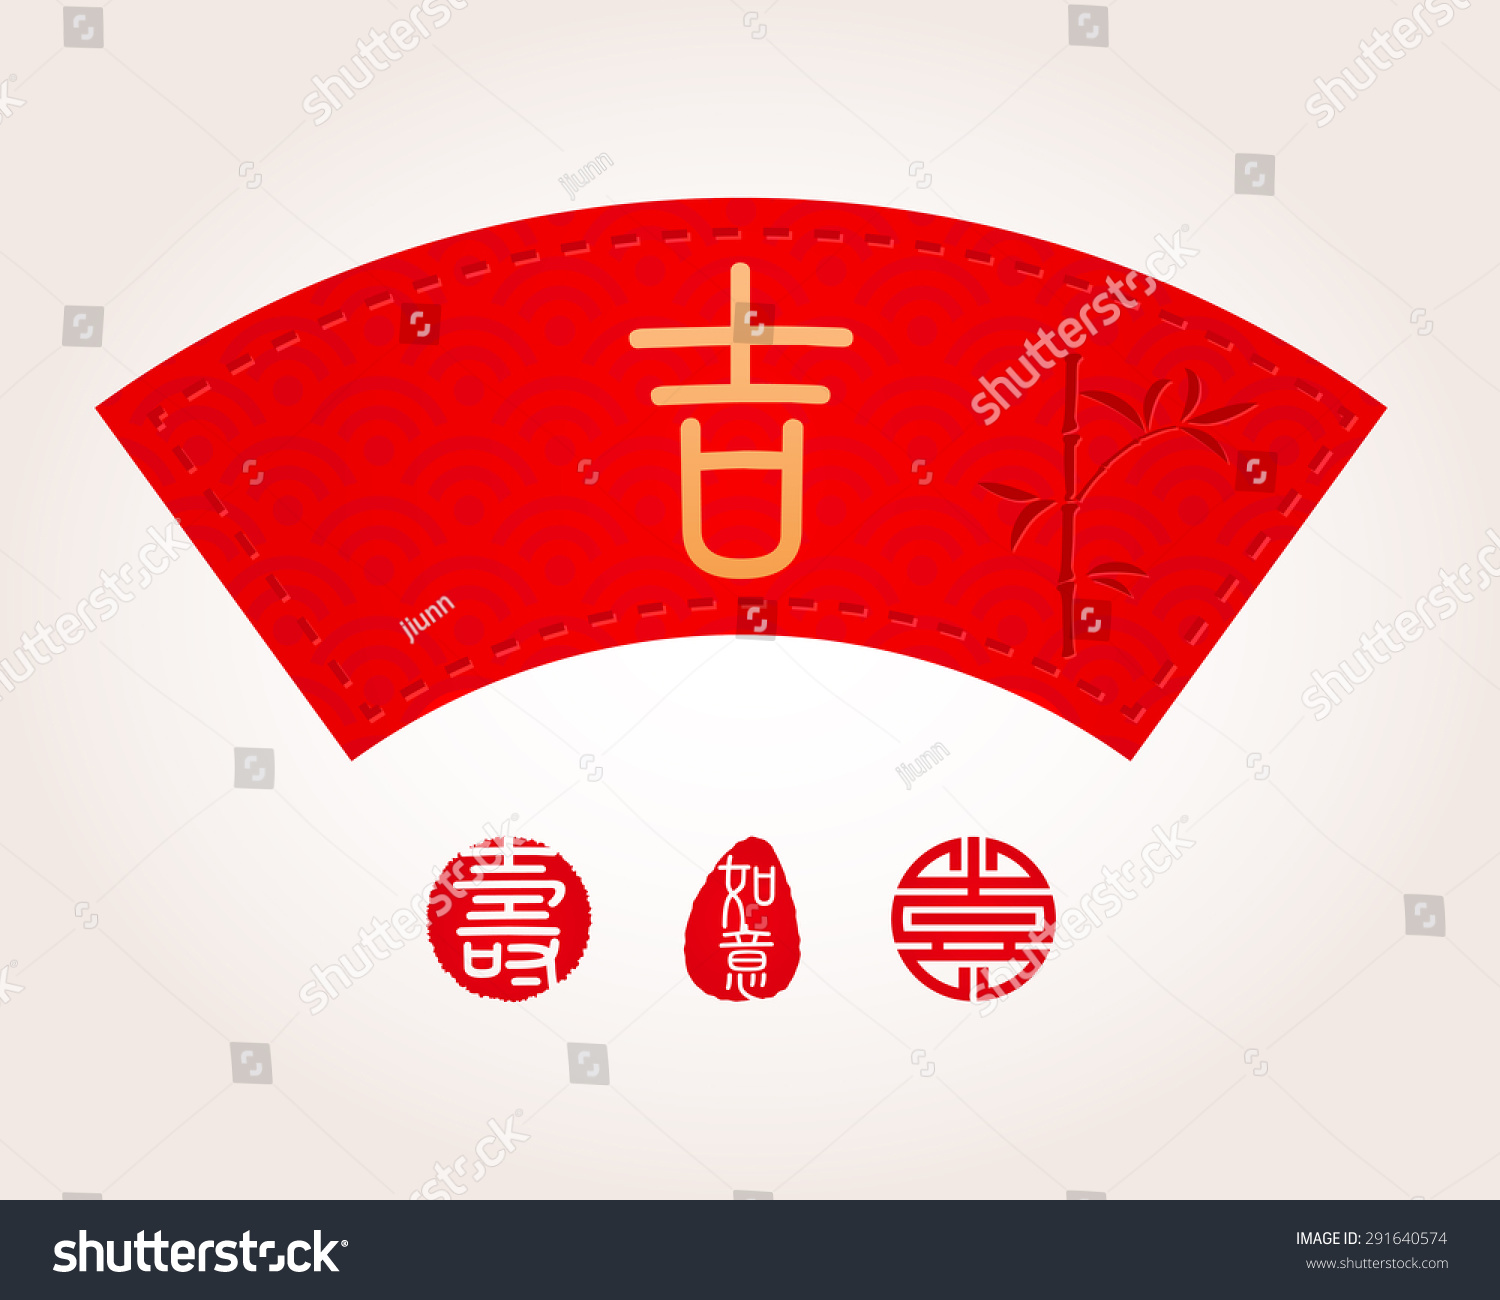 Card design chinese new year chinese stock vector 291640574 card design for chinese new year chinese character ji means good luck biocorpaavc